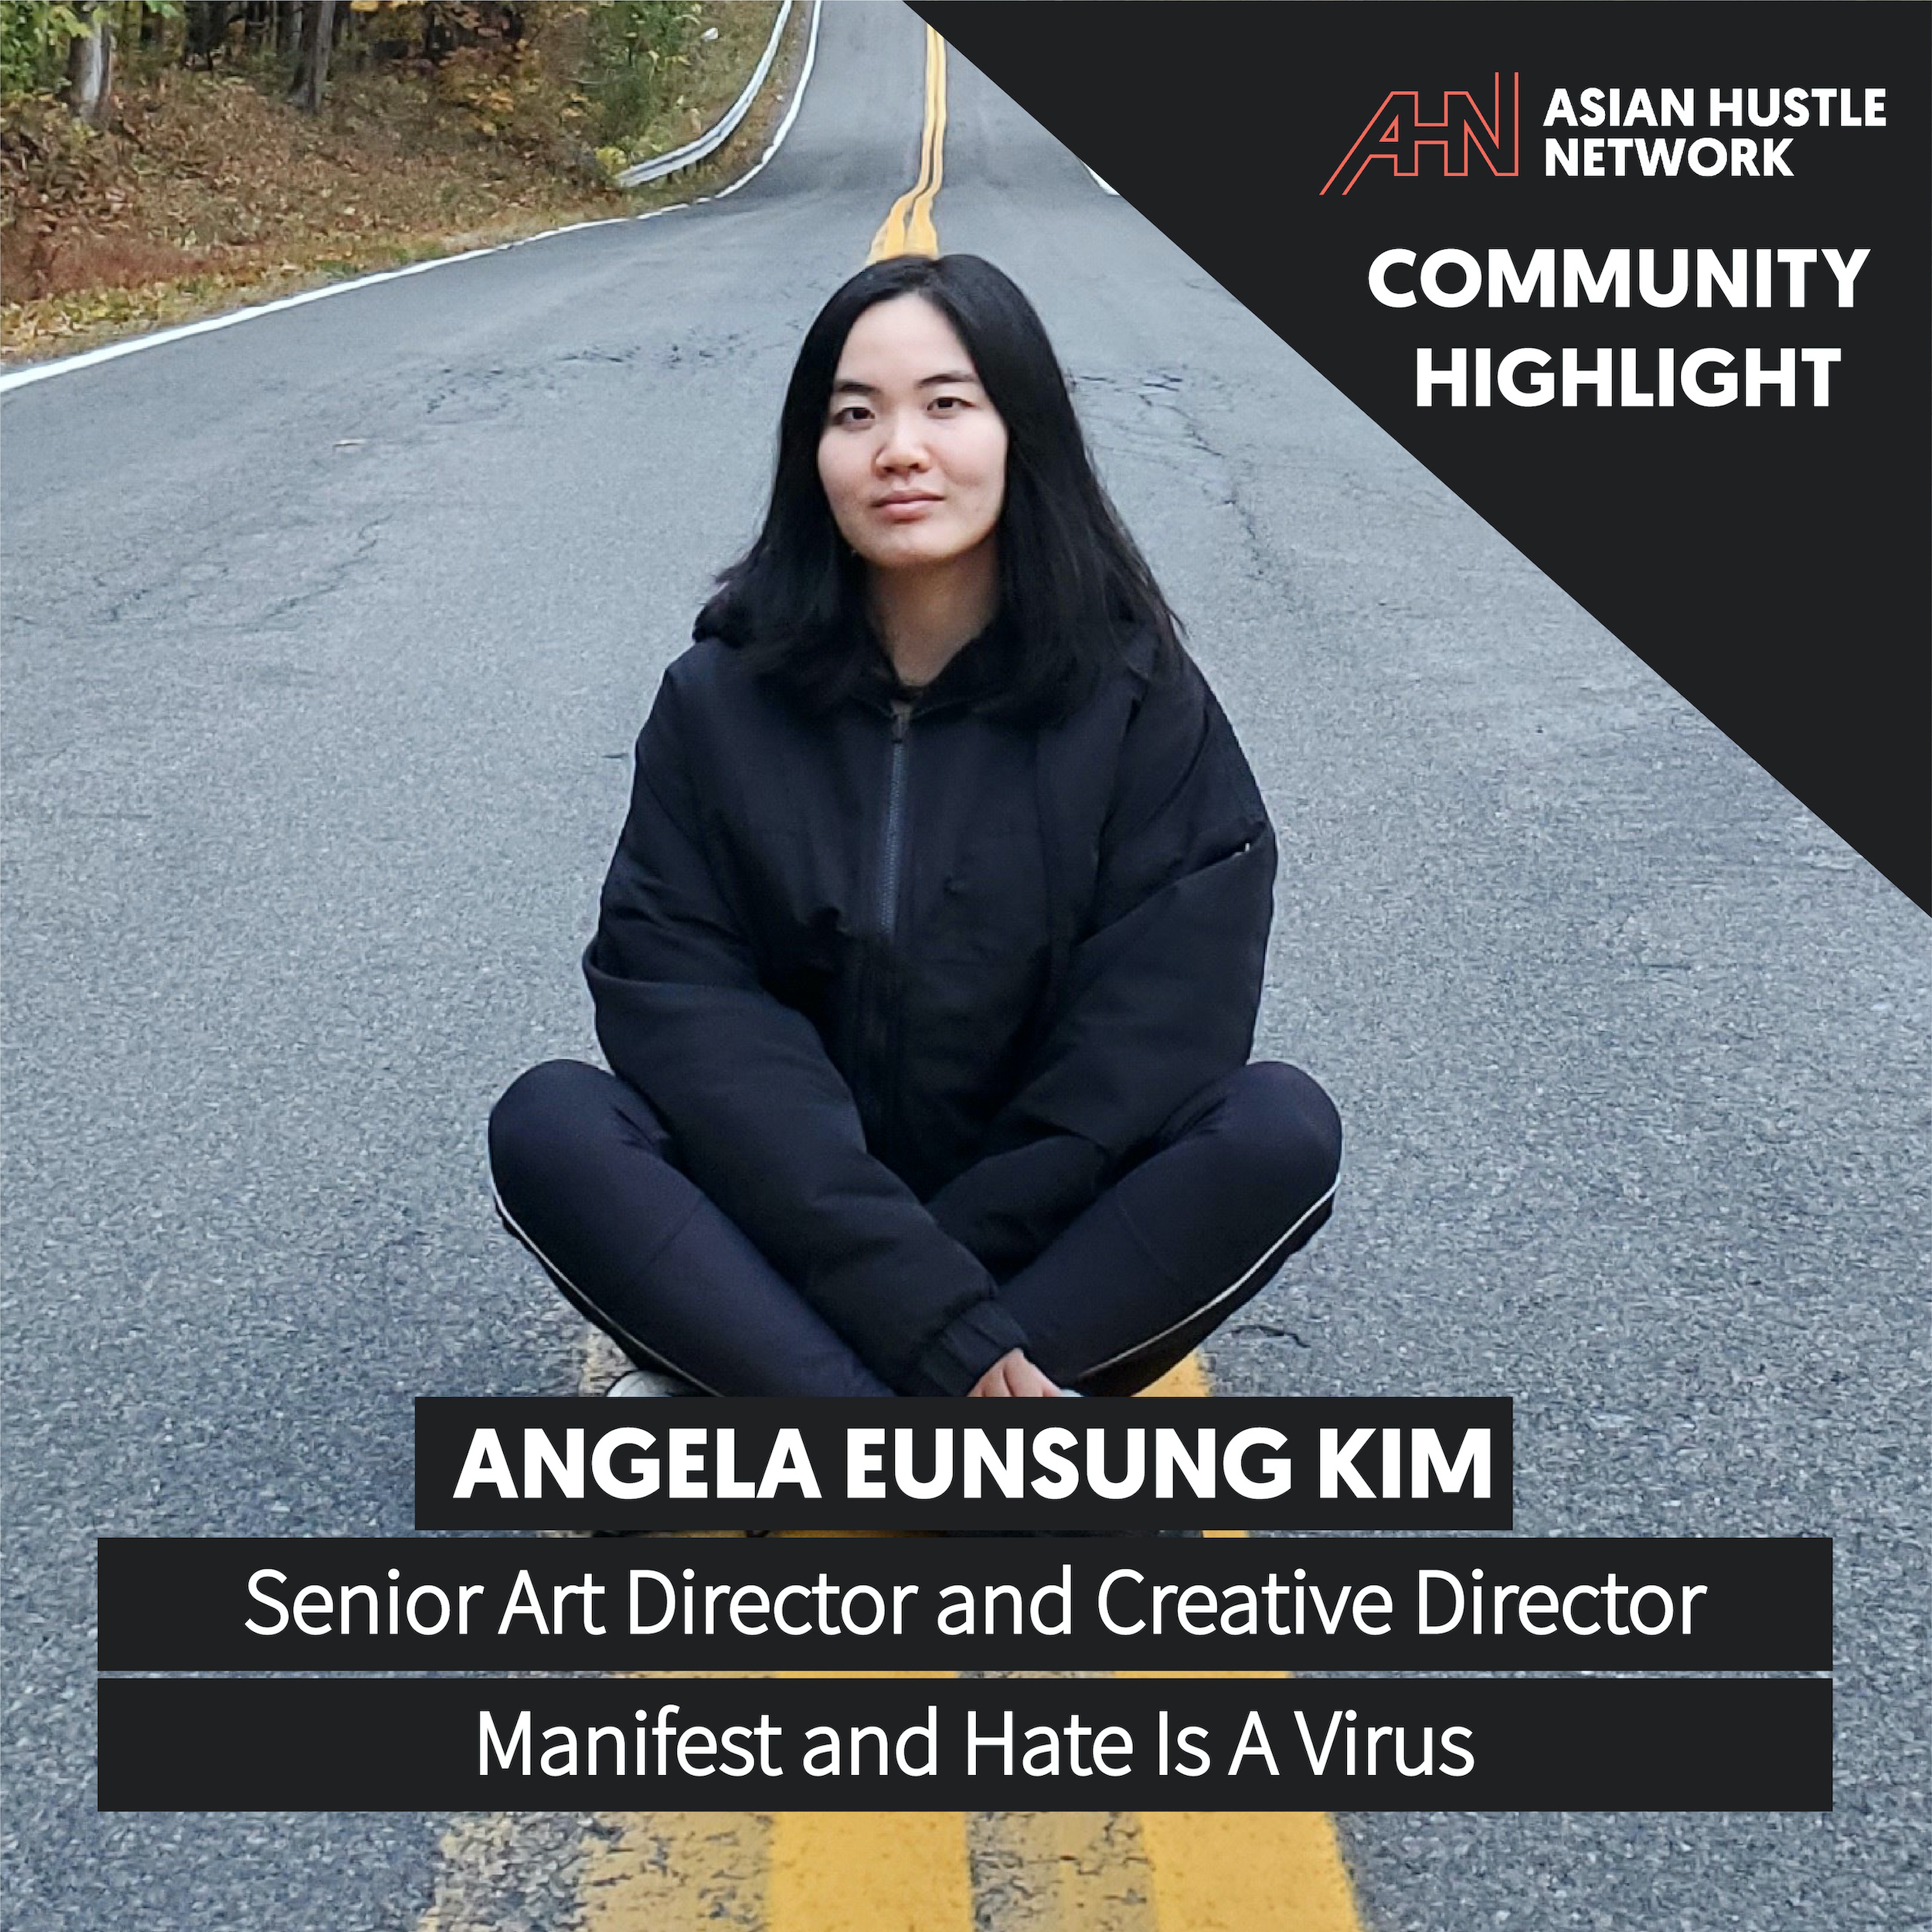 www.asianhustlenetwork.com: Angela EunSung Kim of Manifest and Hate Is A Virus: Making a Difference Through Creativity